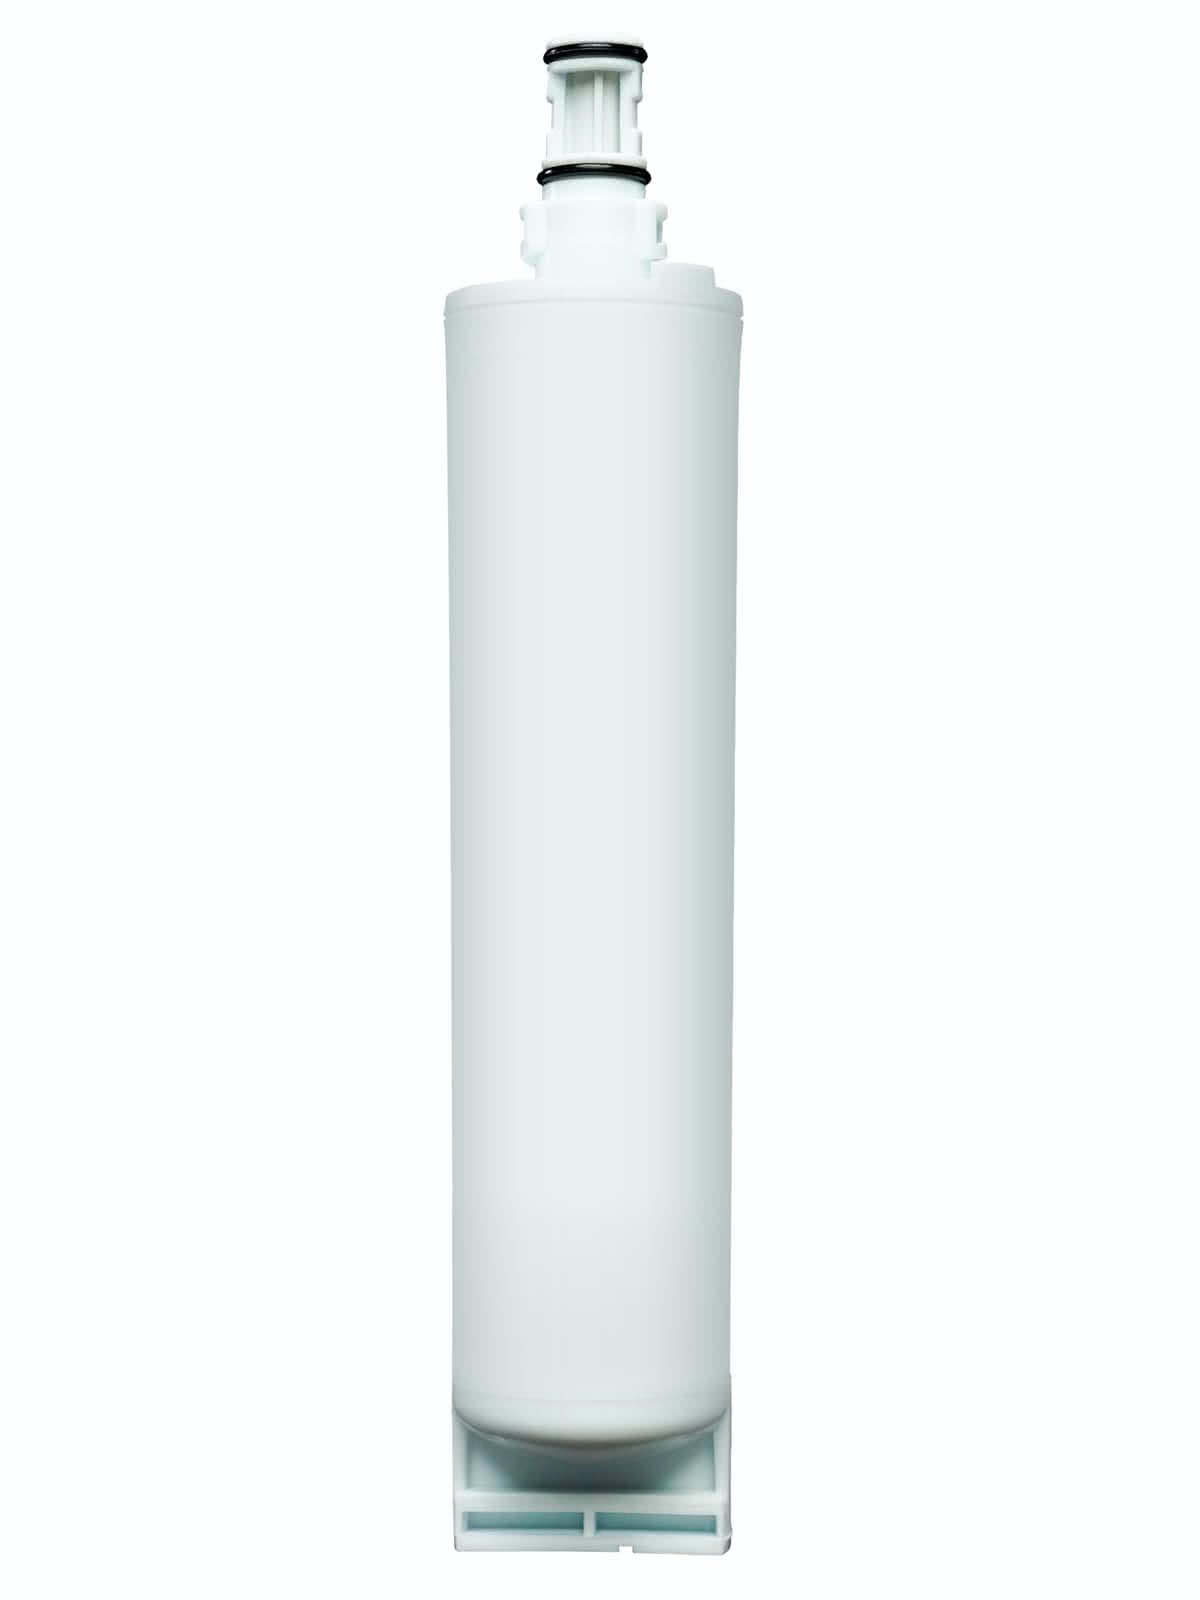 Whirlpool 4396508 compatible second nature filter